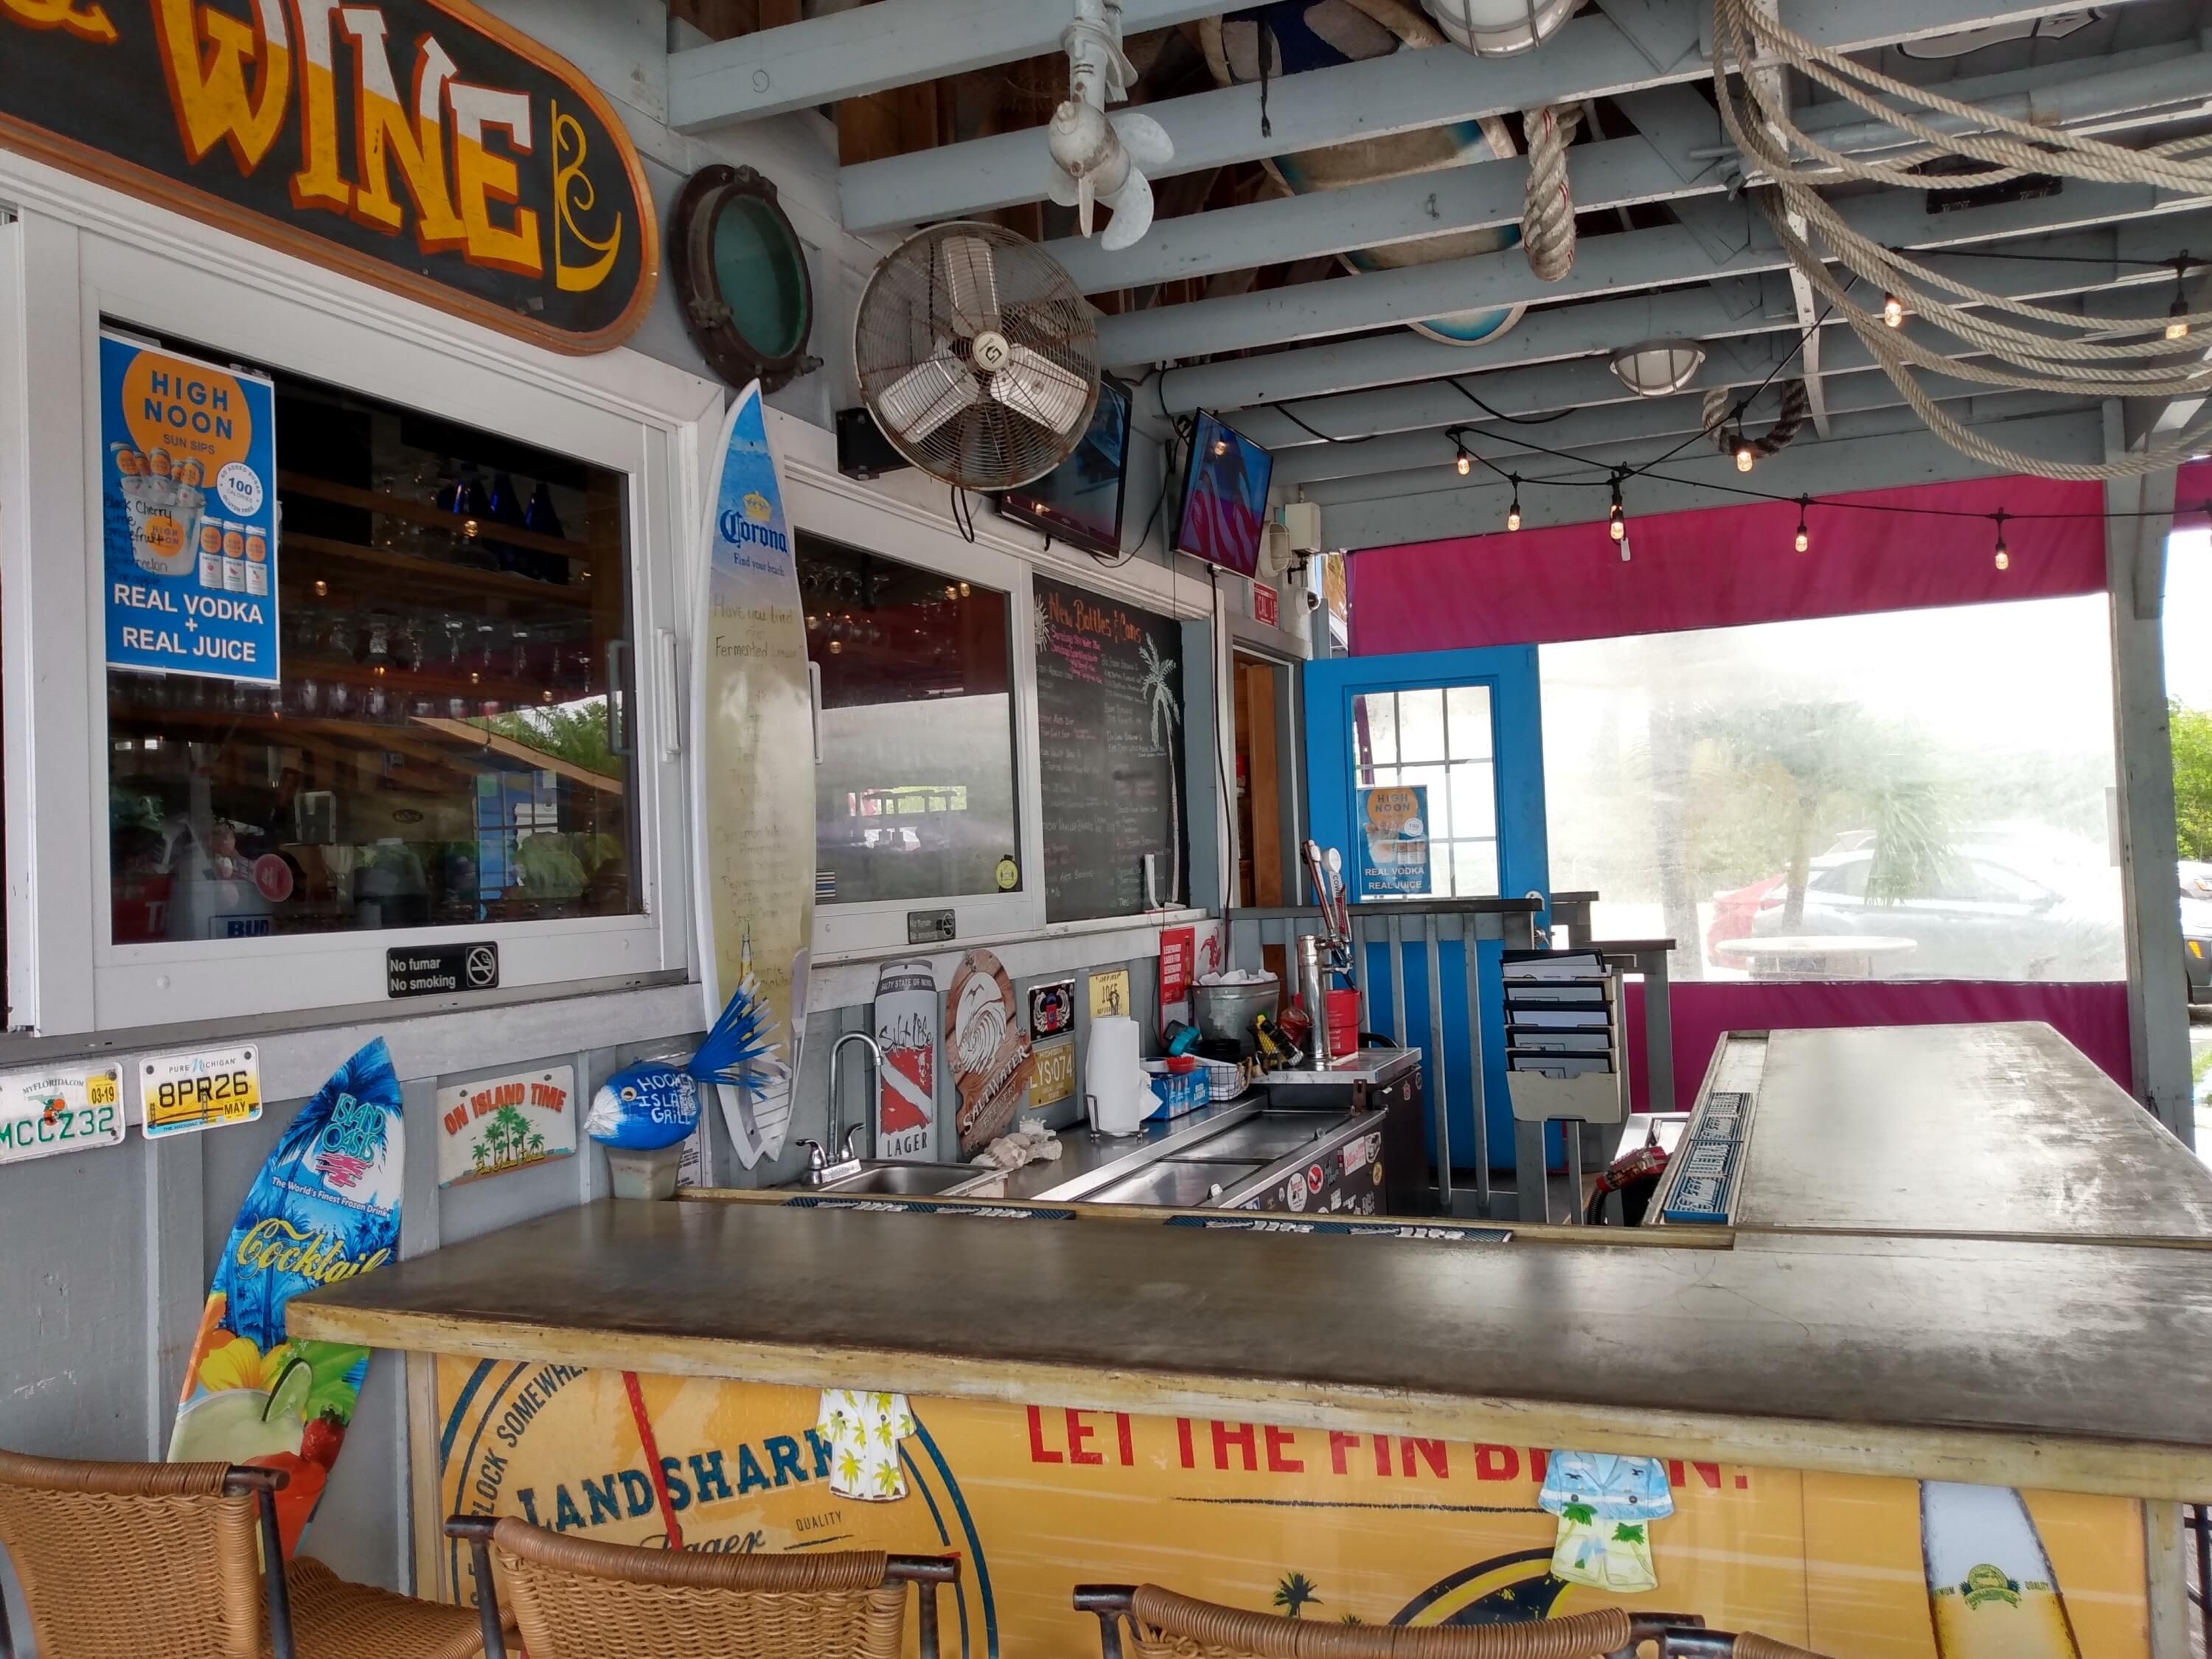 Local Cantina on the bay